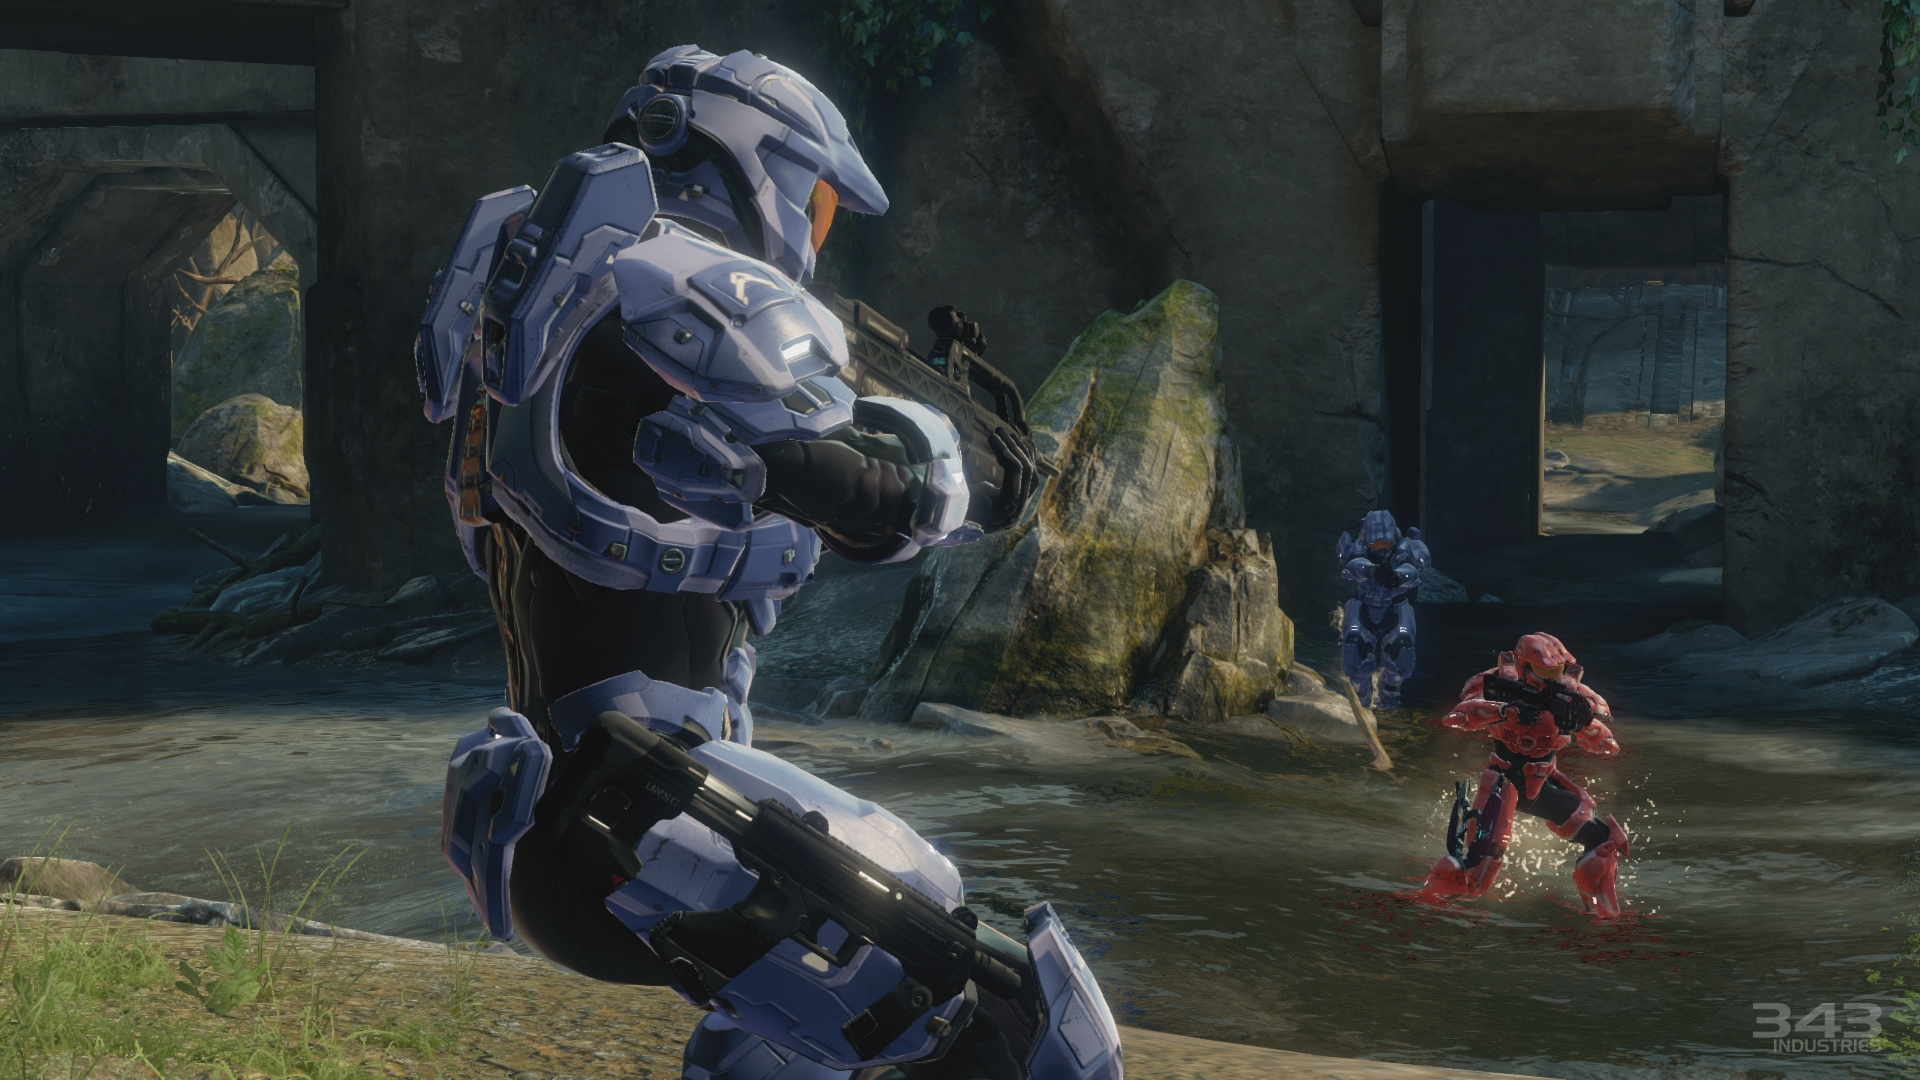 Скриншот из игры Halo: The Master Chief Collection под номером 17